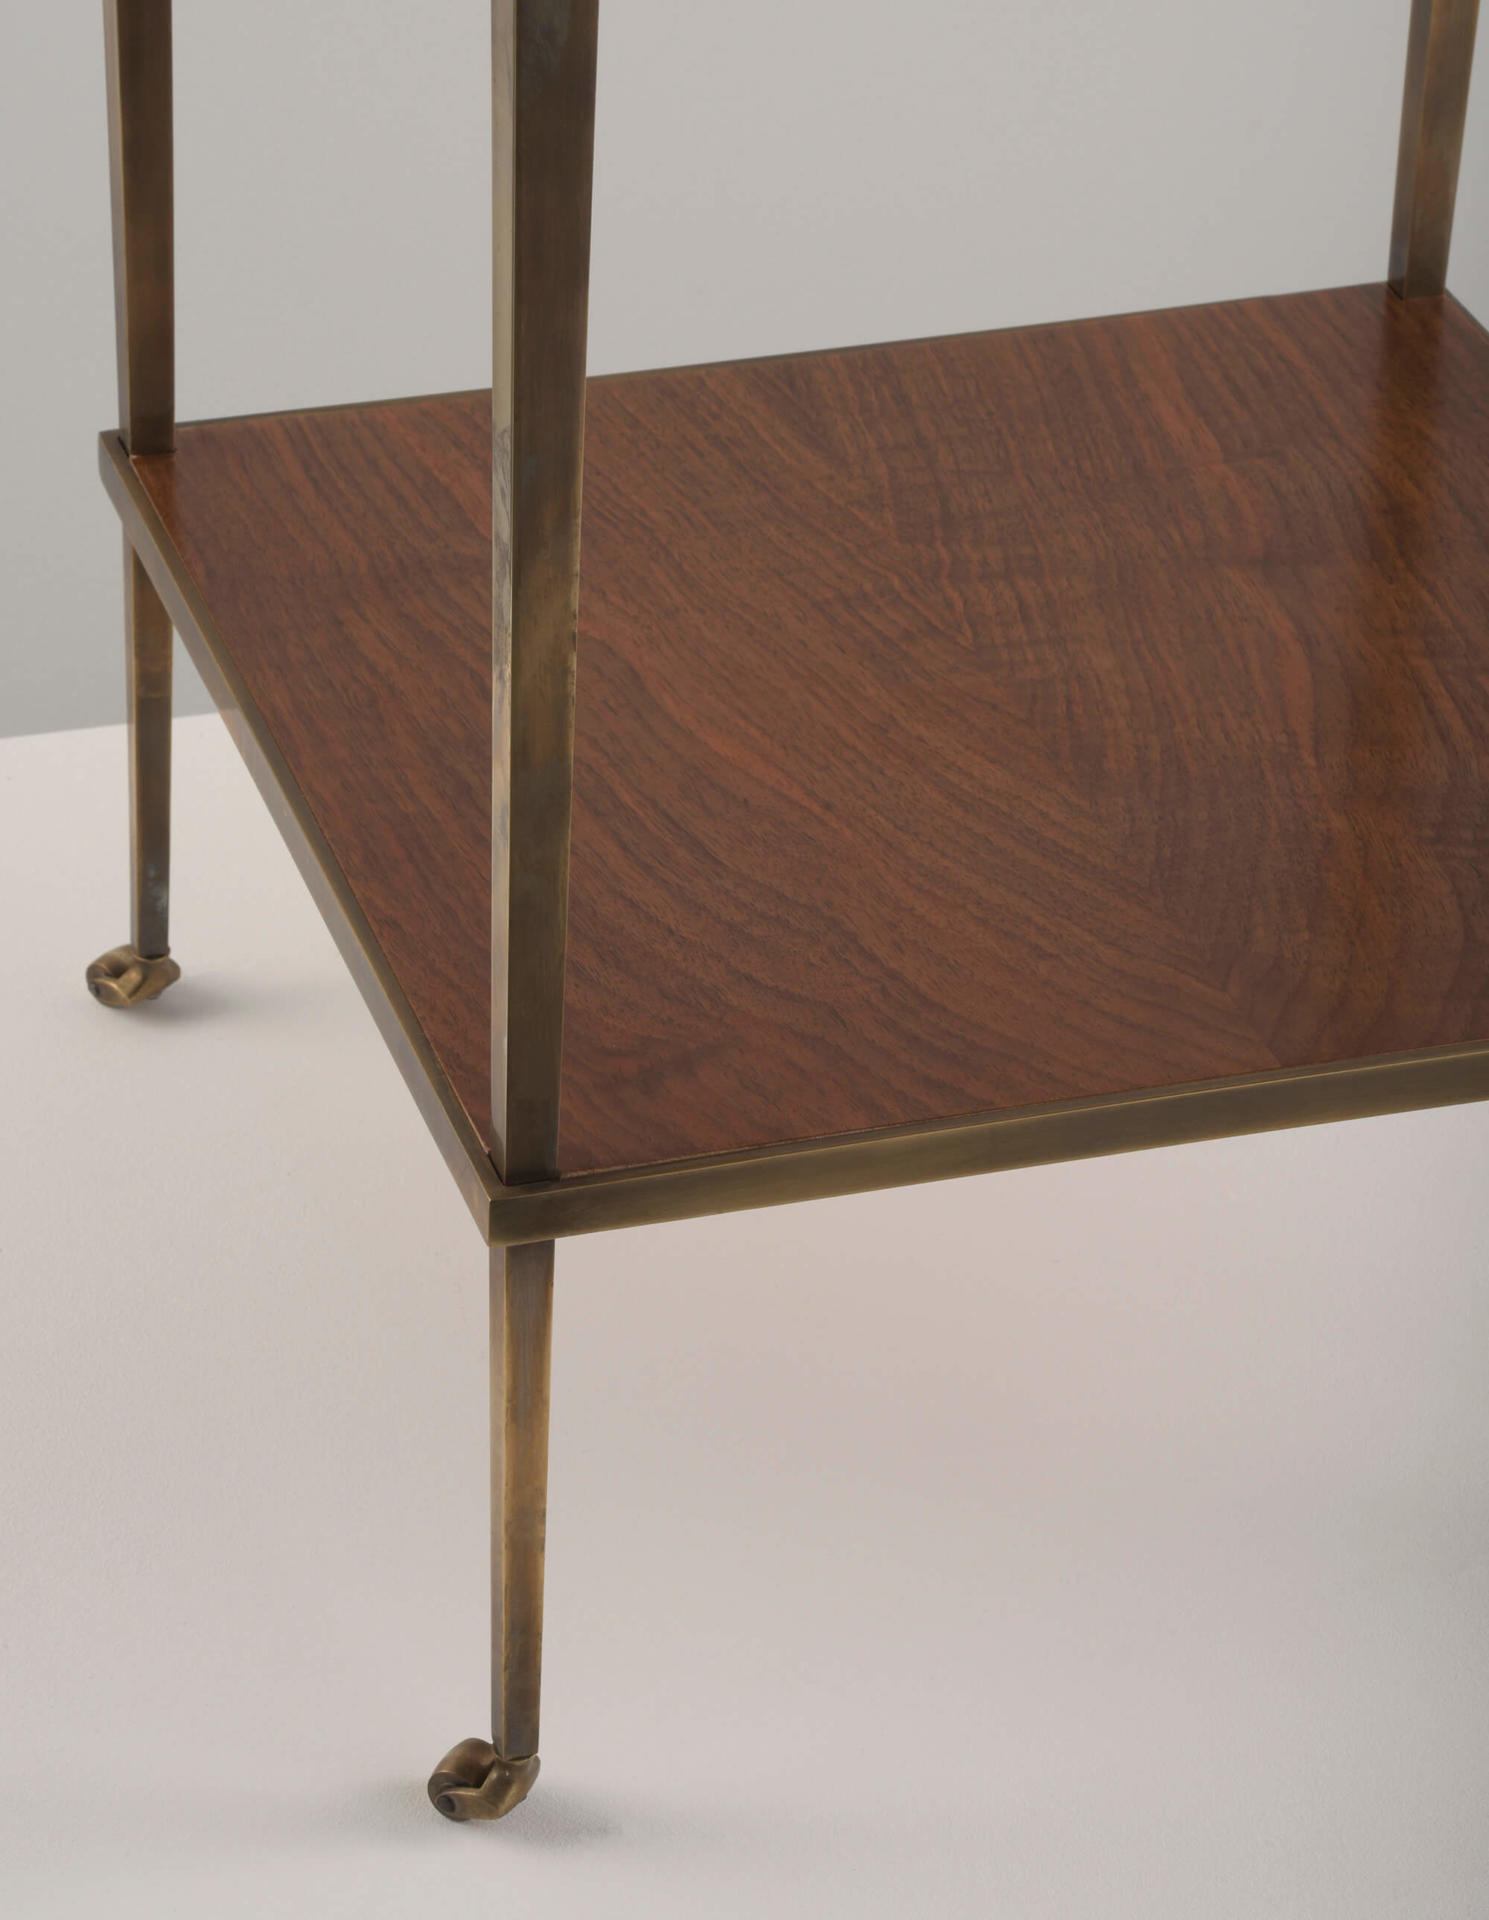 antique reproduction side table by Collier Webb